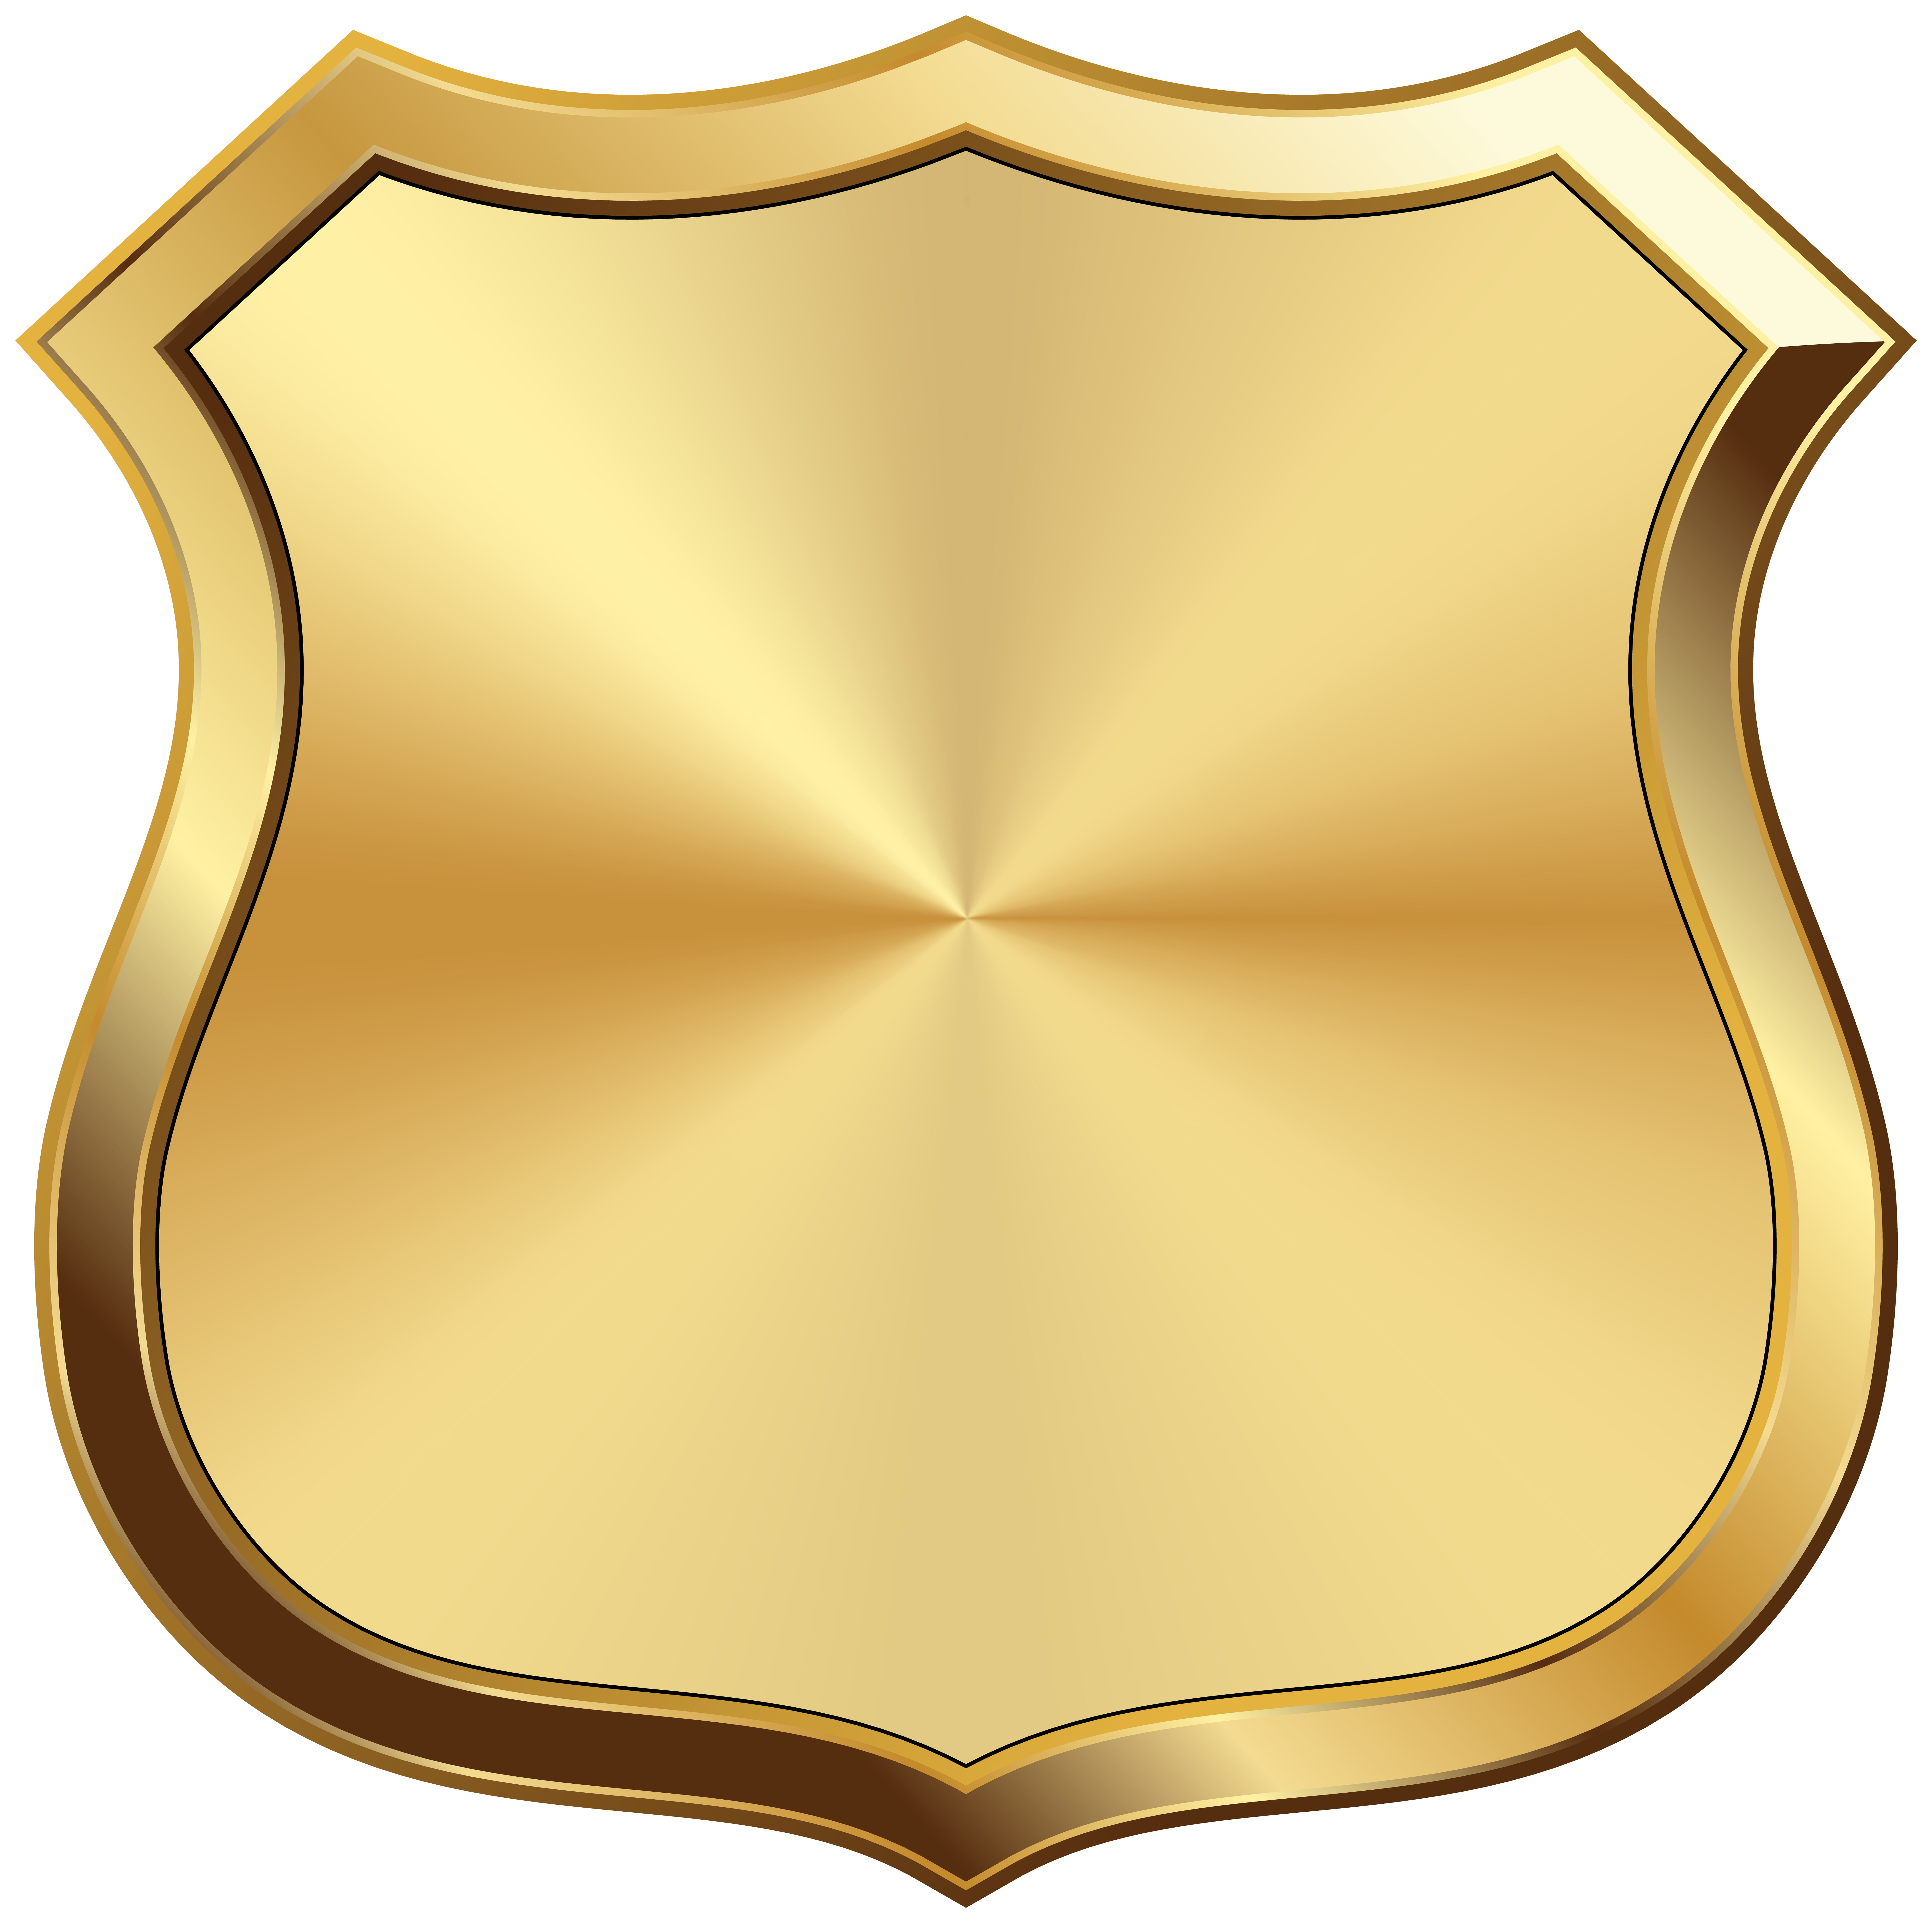 Transparent png image gallery. Badge clipart gold